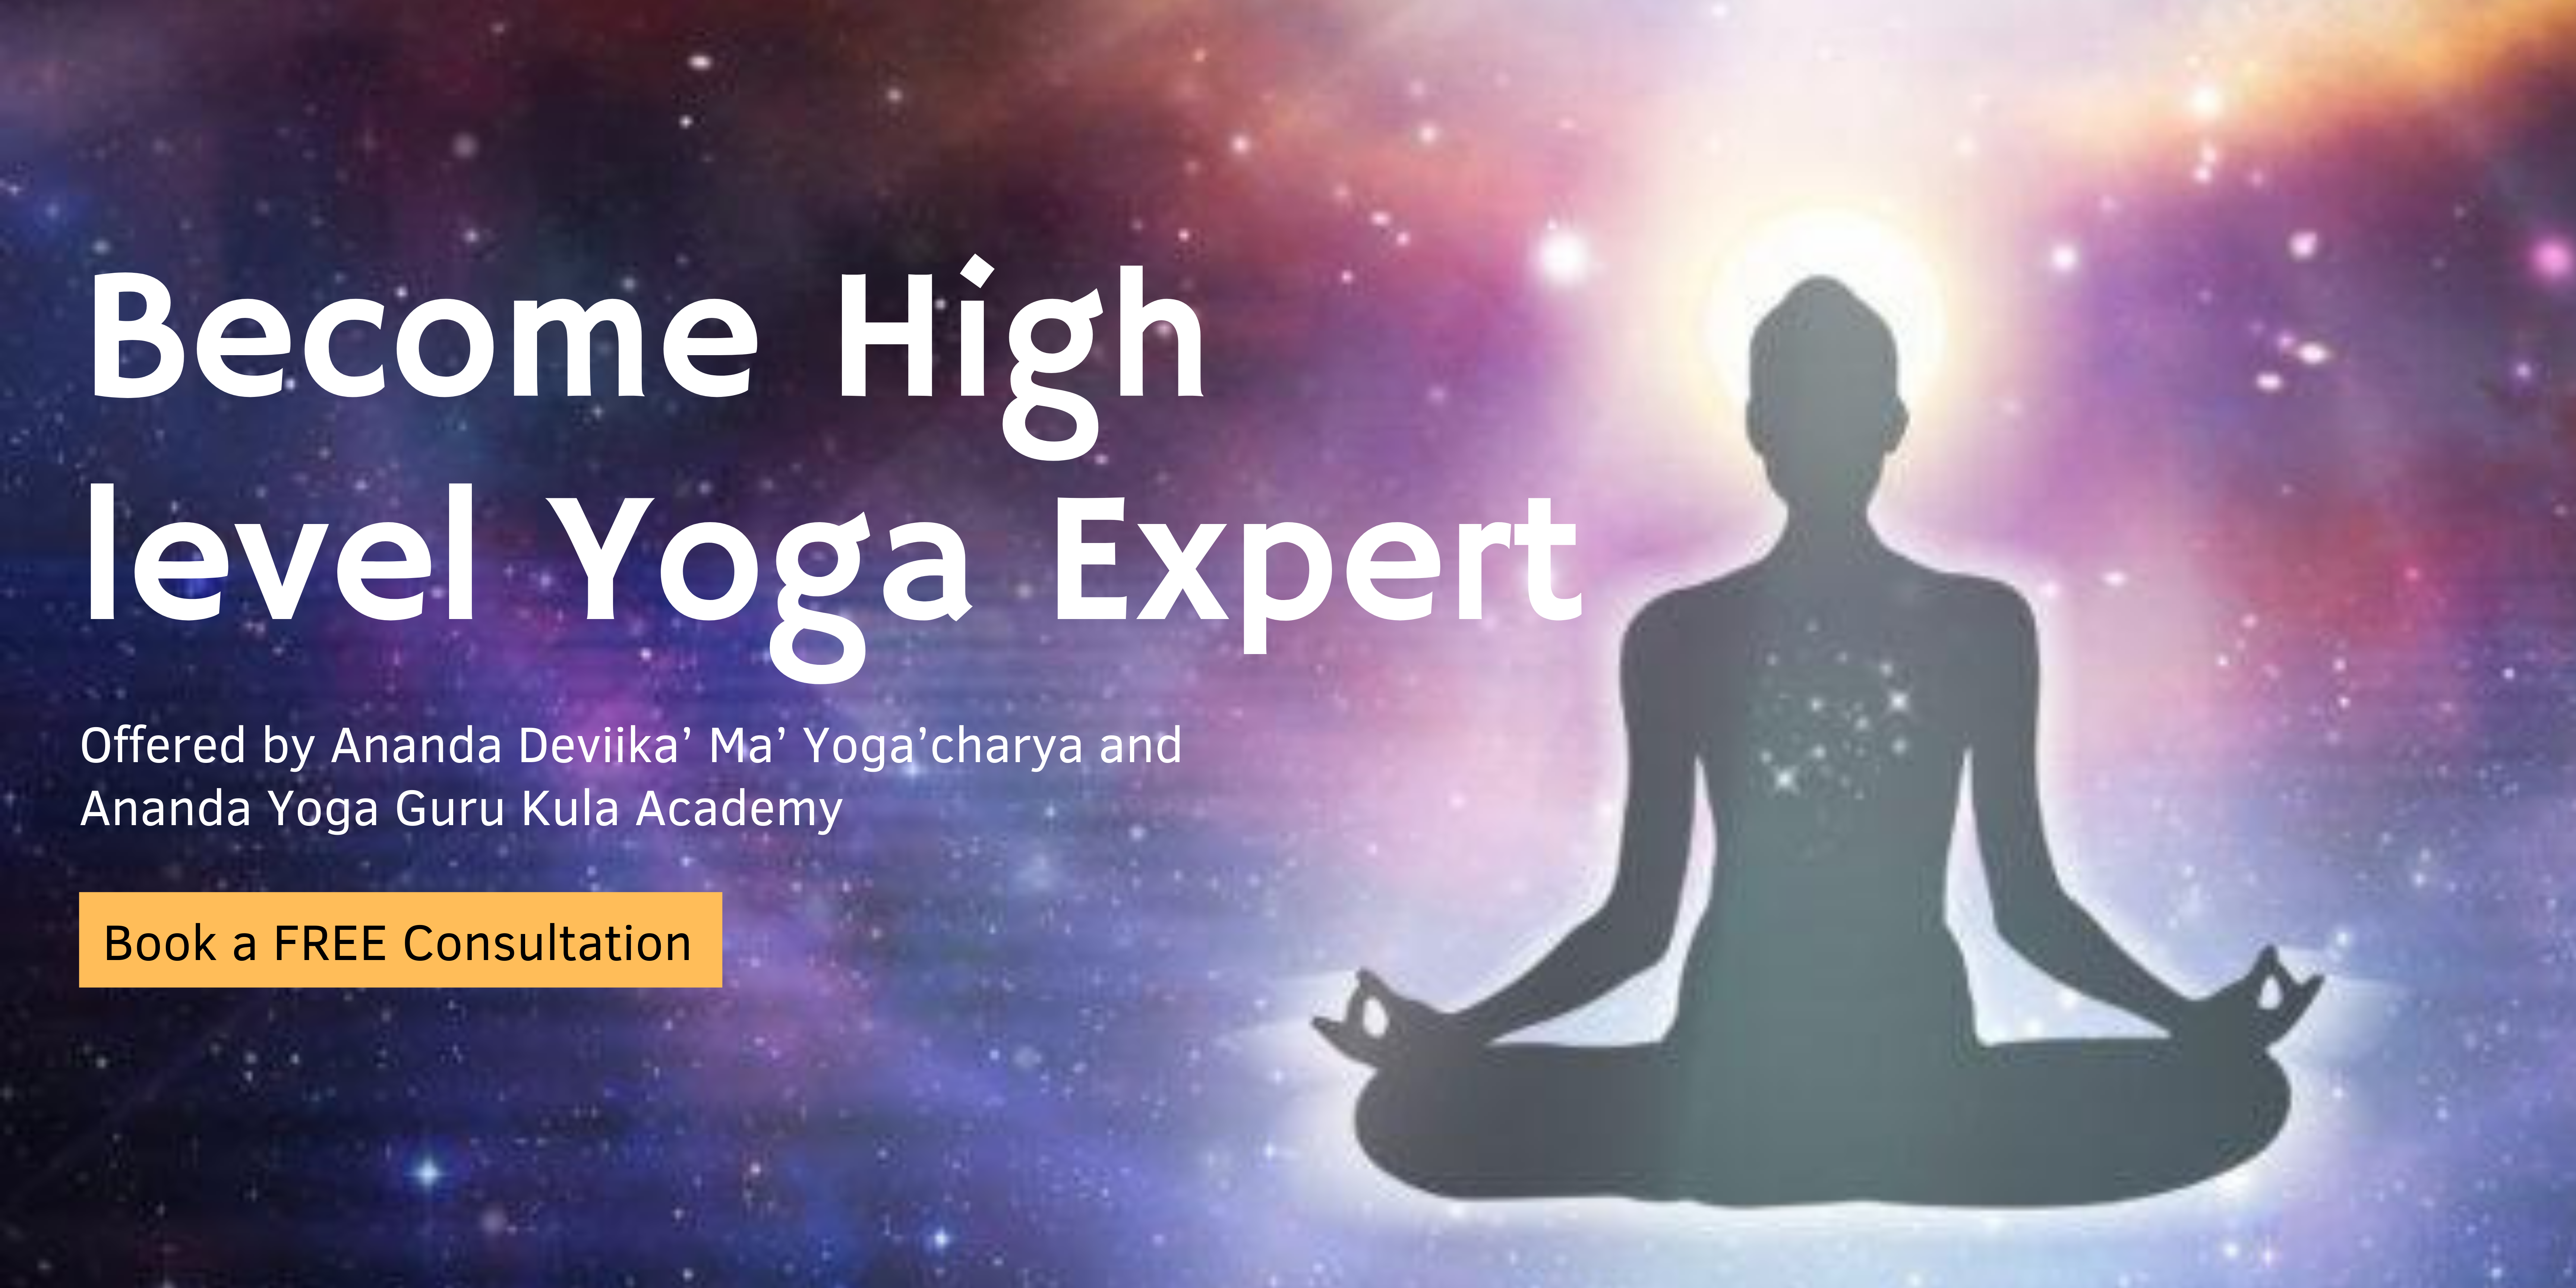 Become High level Yoga Expert